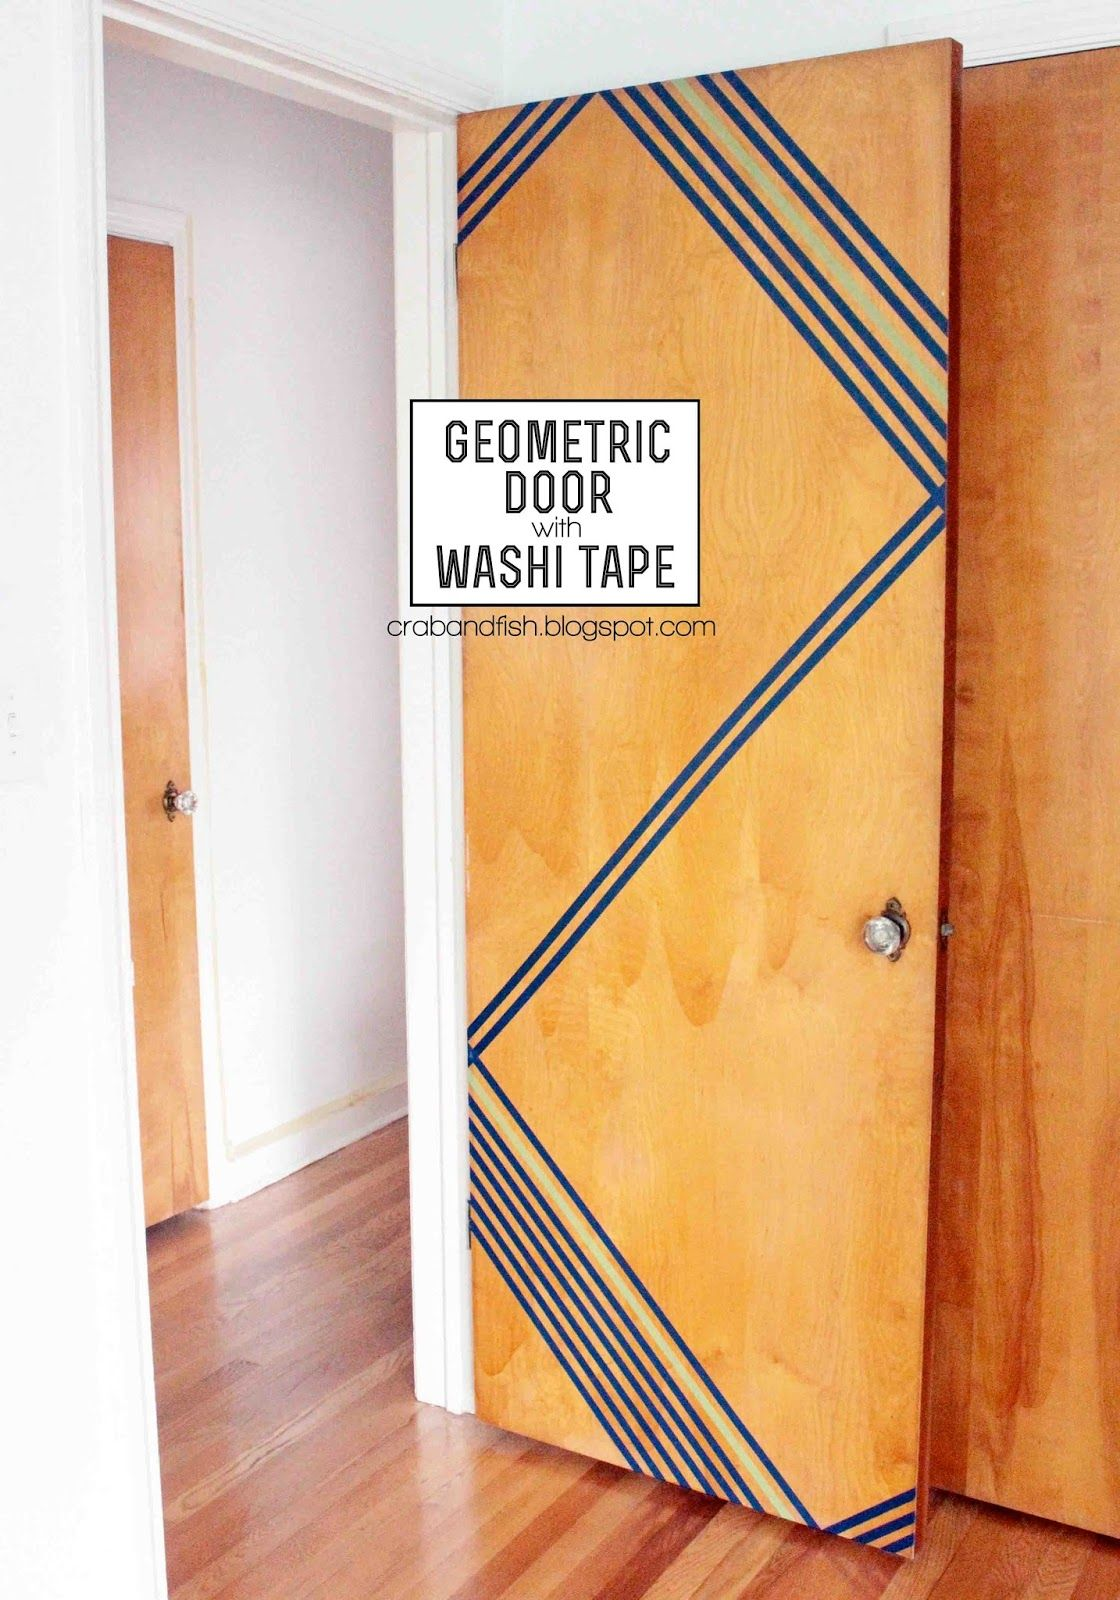 DIY Dorm Room Decor Ideas   Washi Tape Geometric Door   Cheap DIY Dorm Decor  Projects For College Rooms   Cool Crafts, Wall Art, Easy Organization For  Girls ...